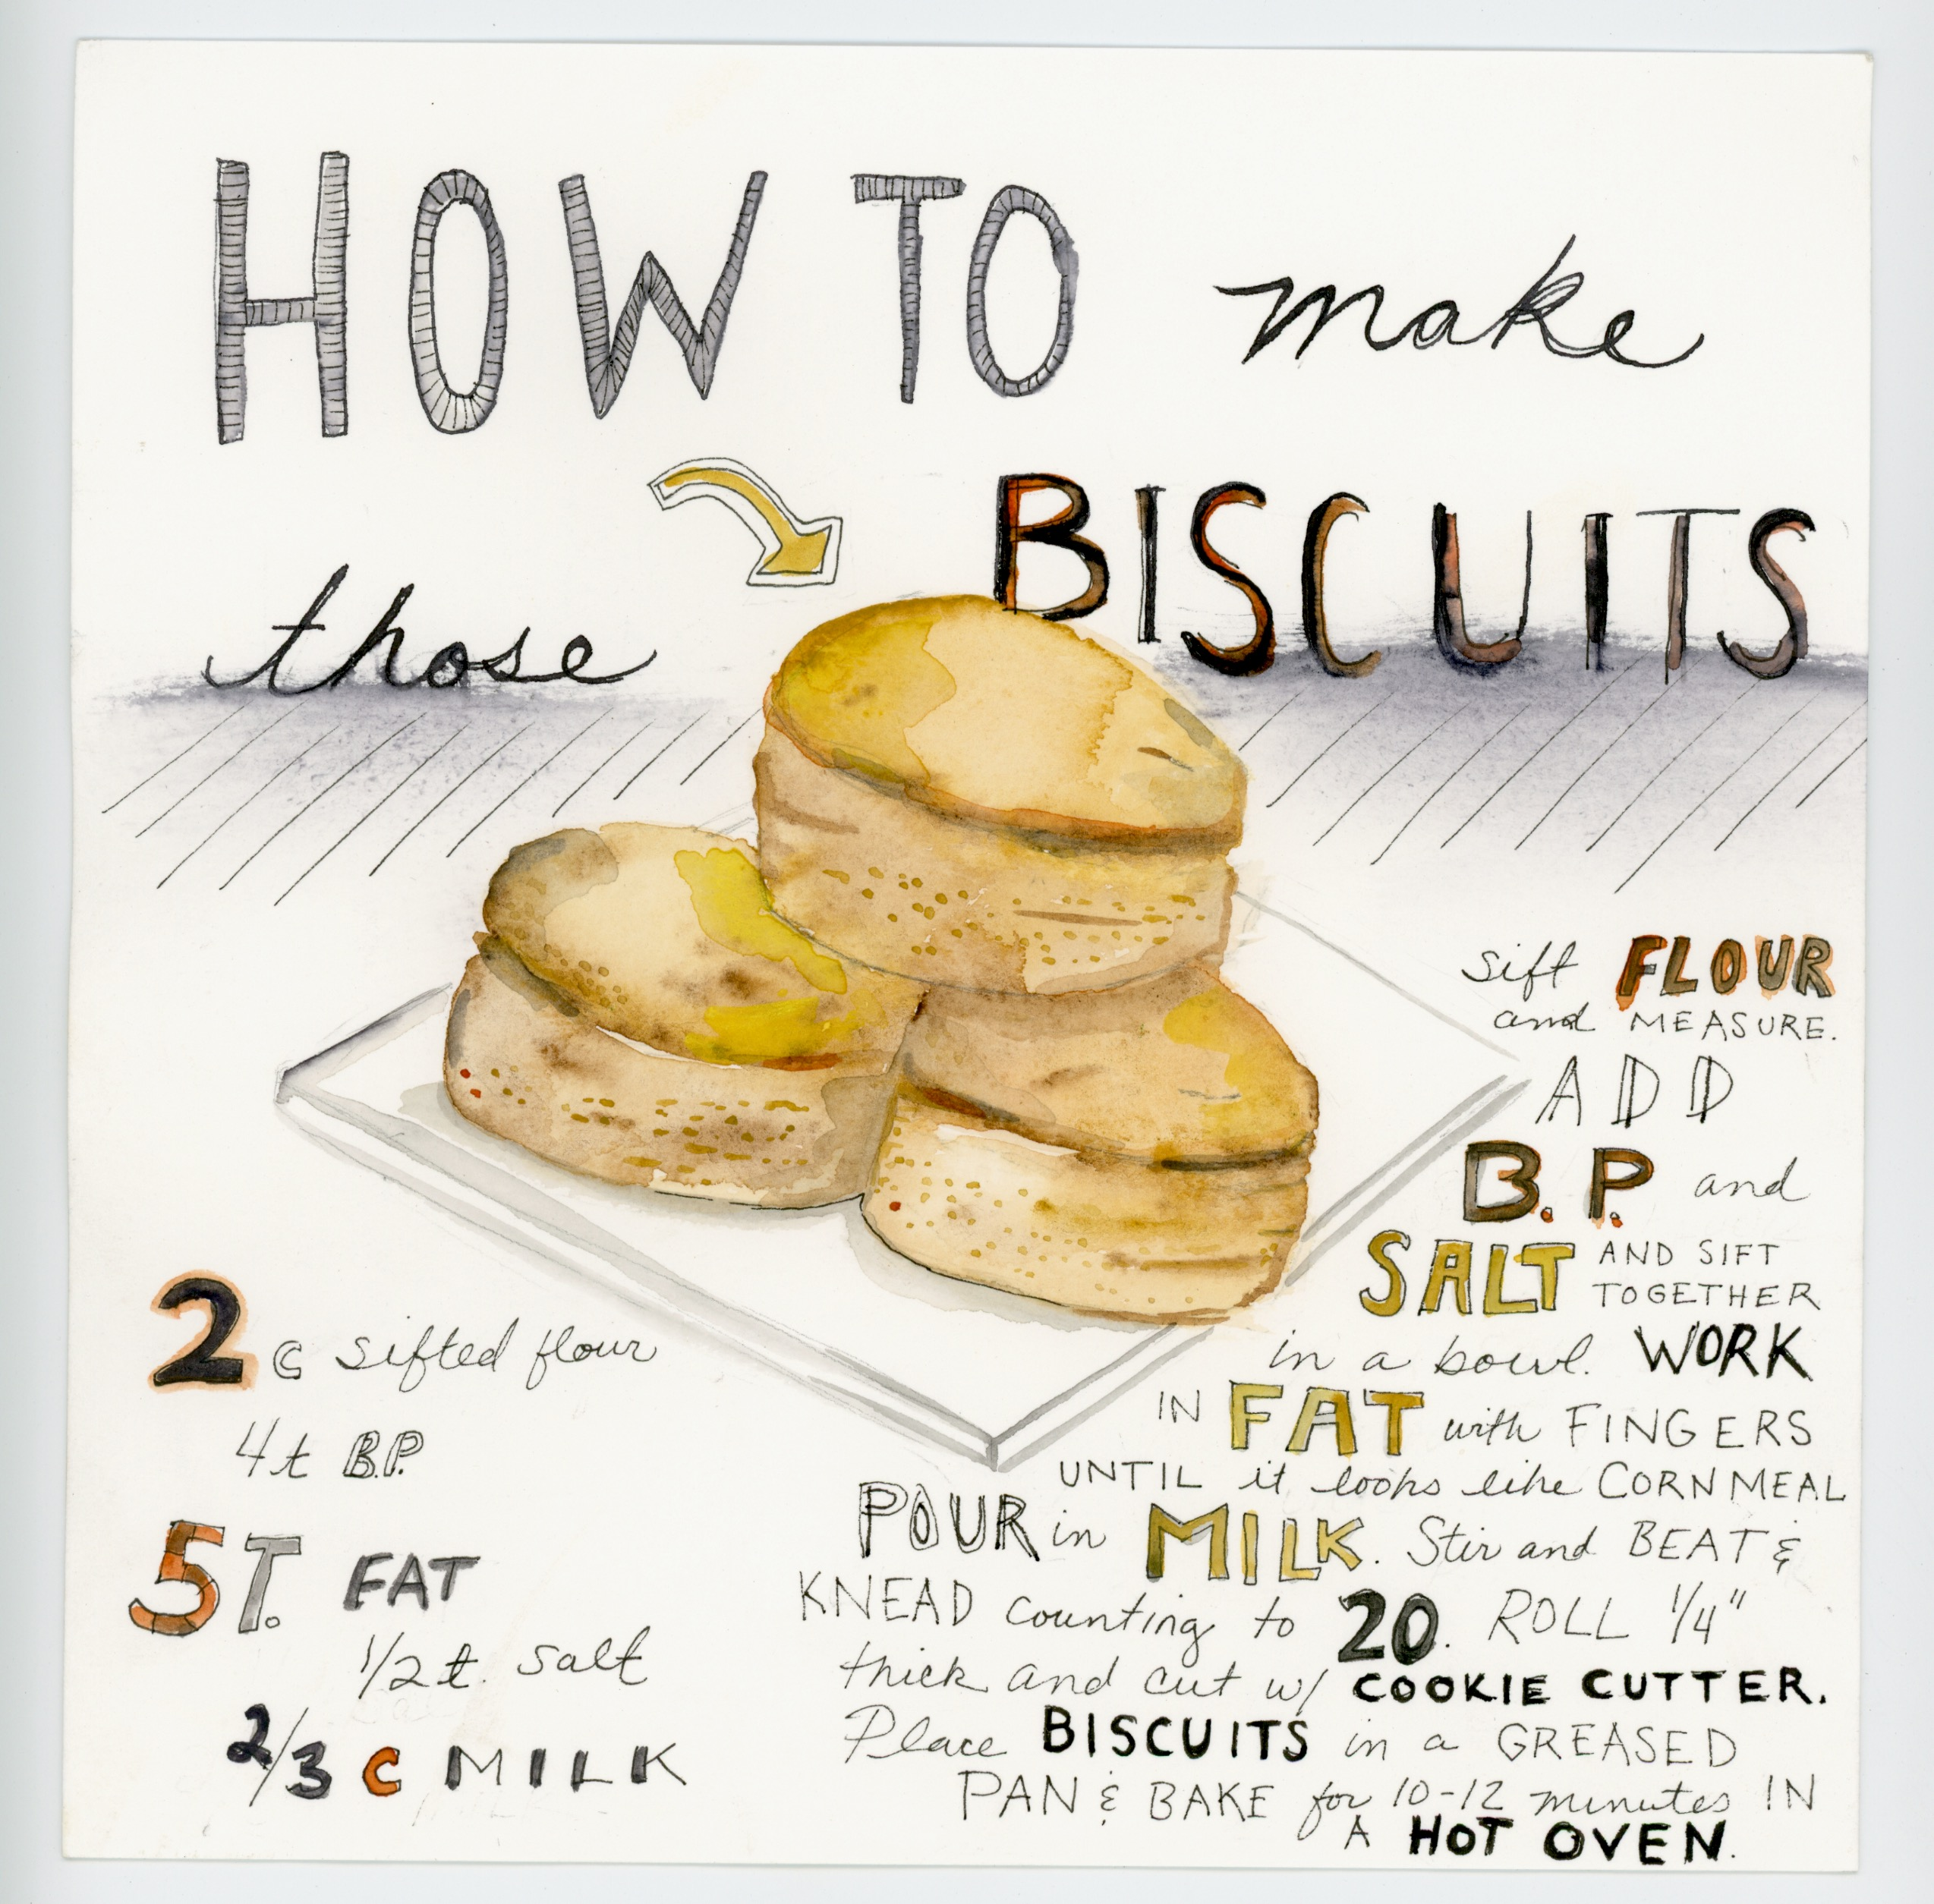 Those Biscuits